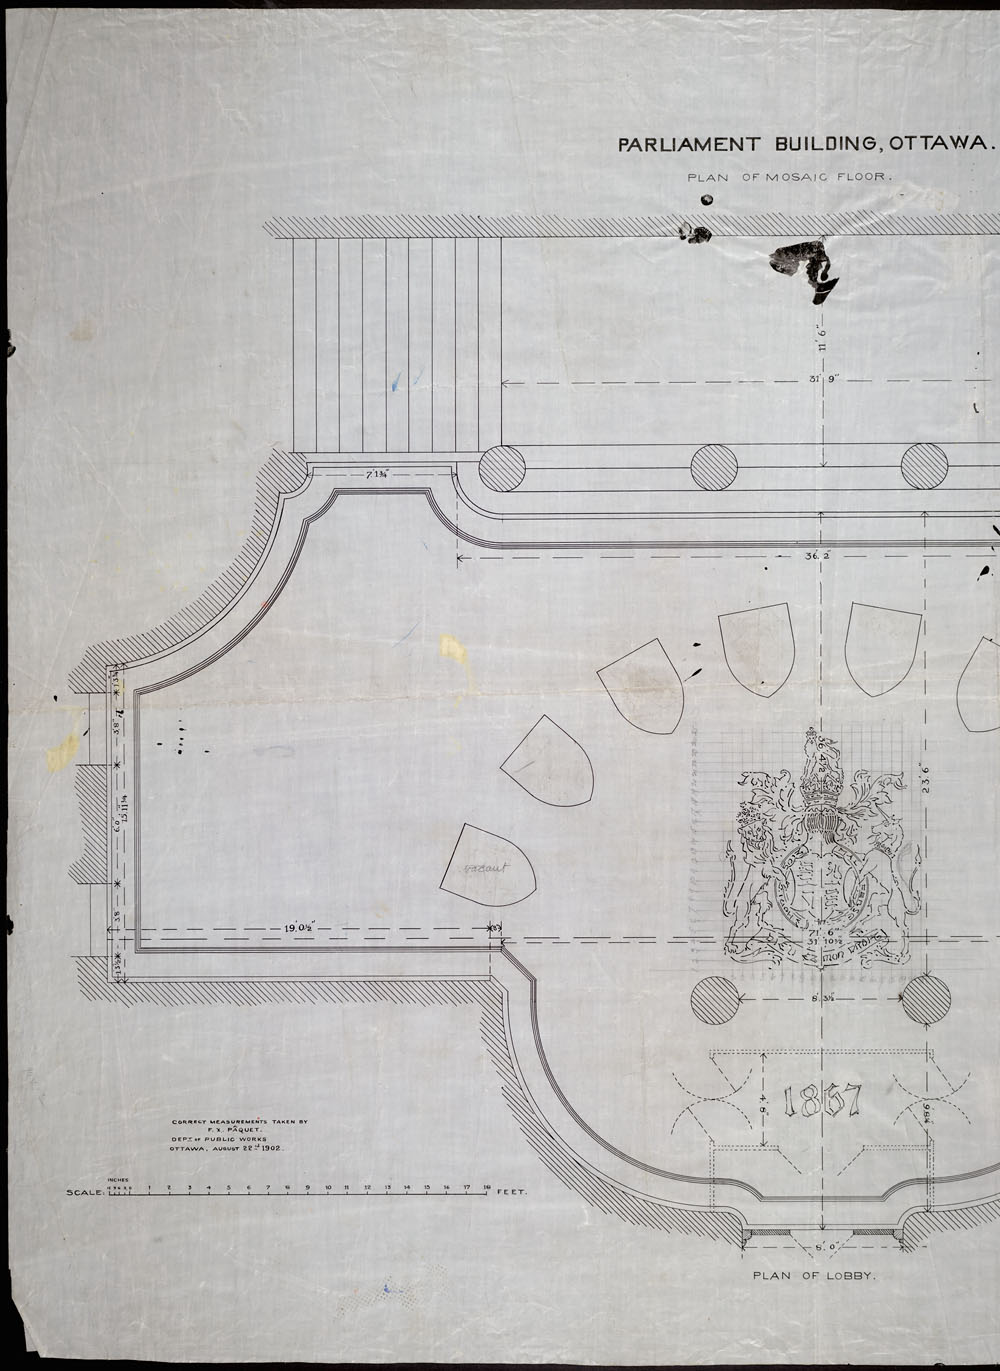 Old Centre Block, Parliament Buildings, Ottawa.  Plan of mosaic floor [inlobby]. (item 1)